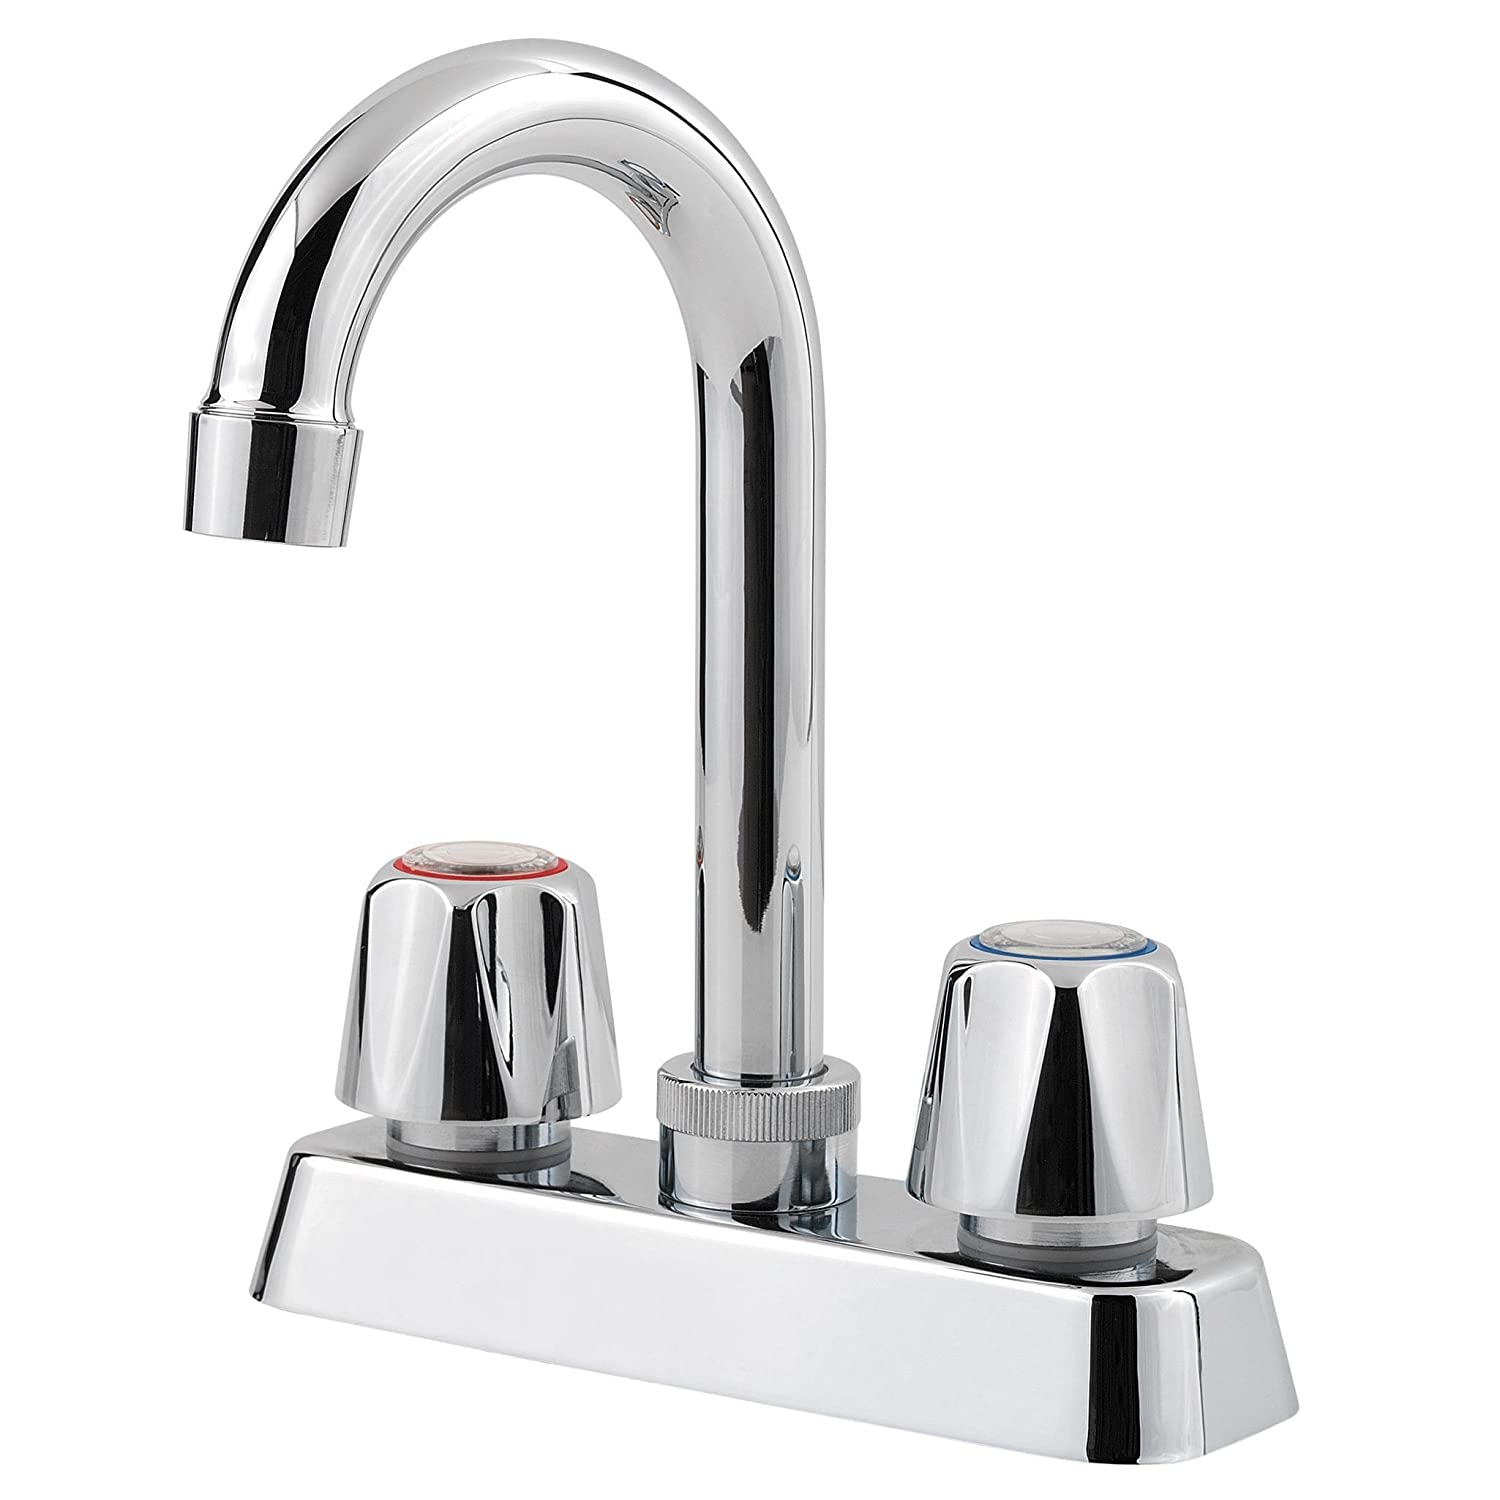 polished pull out productdetailzoom chrome handle sq kitchen pfirst faucet pfister price series product